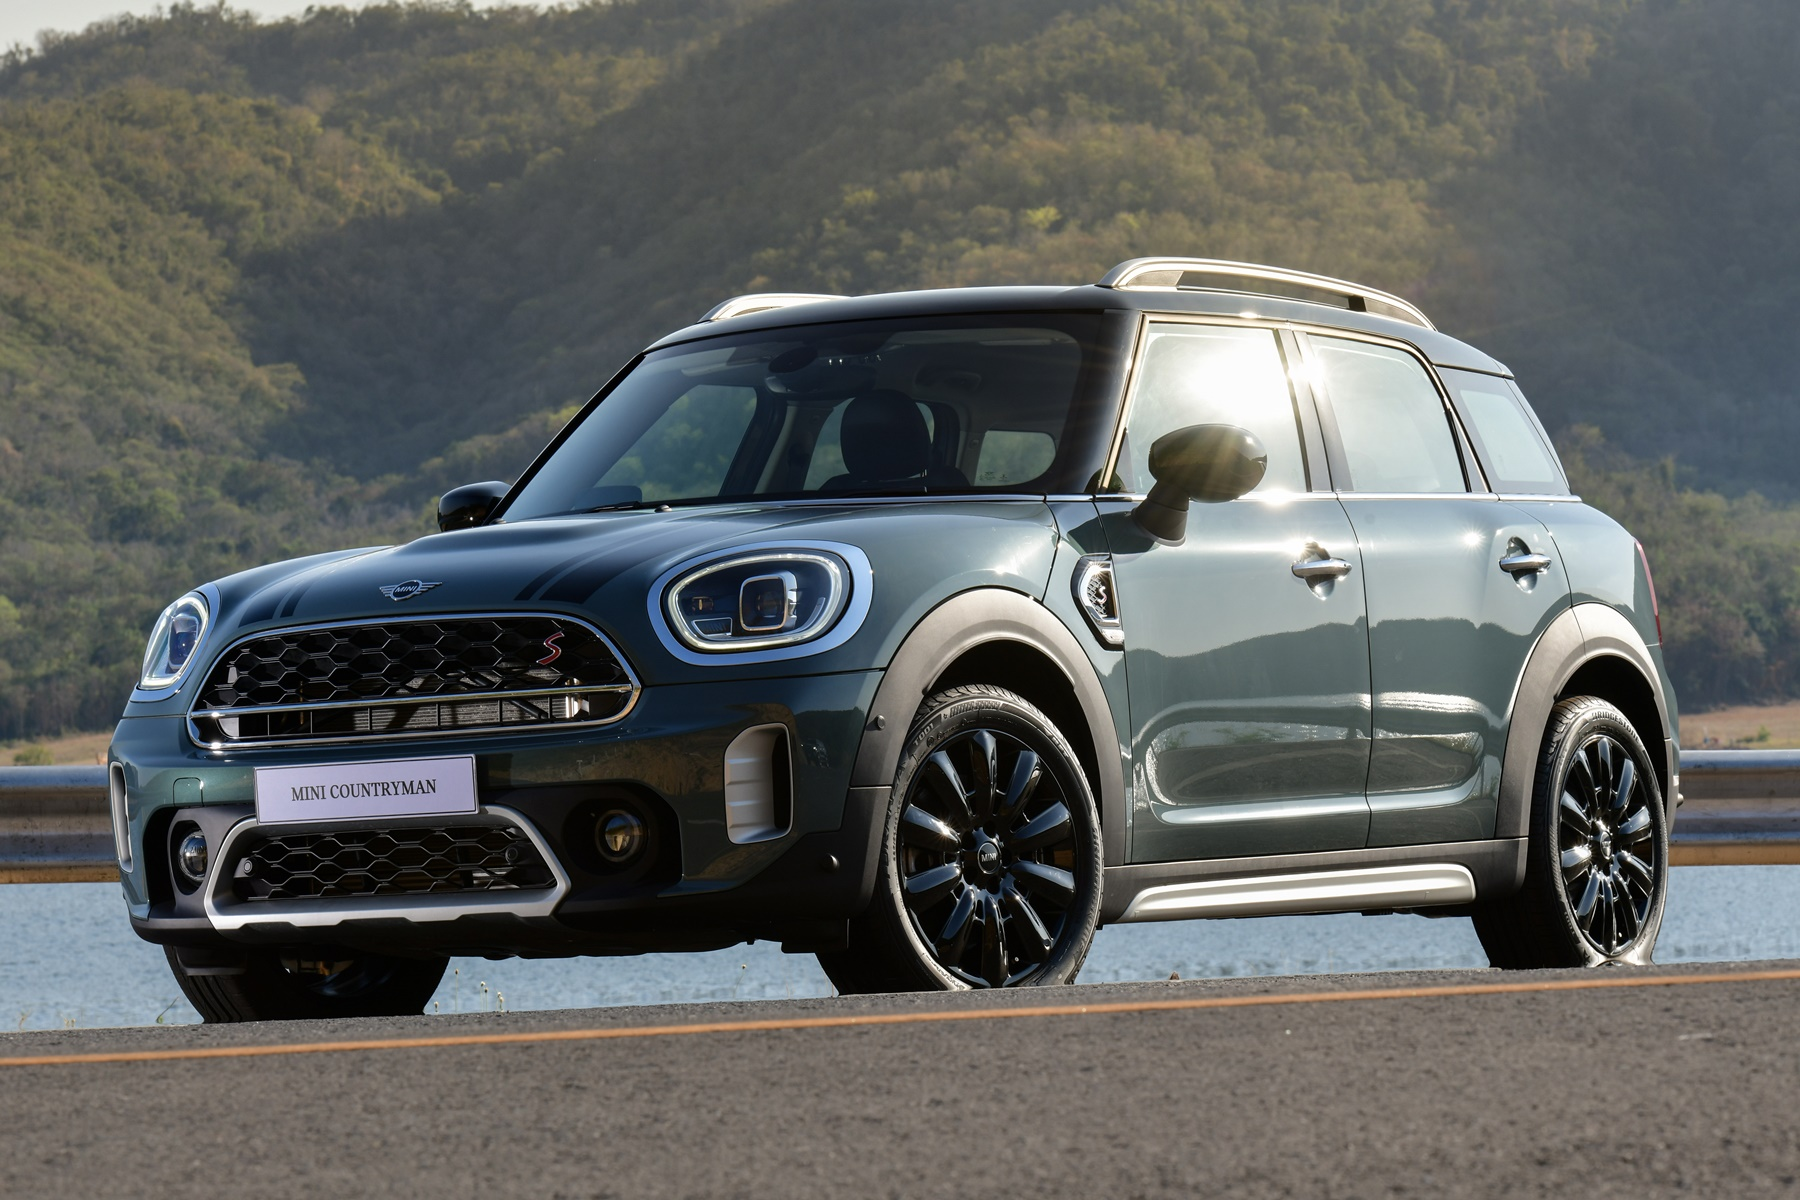 MINI Cooper S Countryman (34)